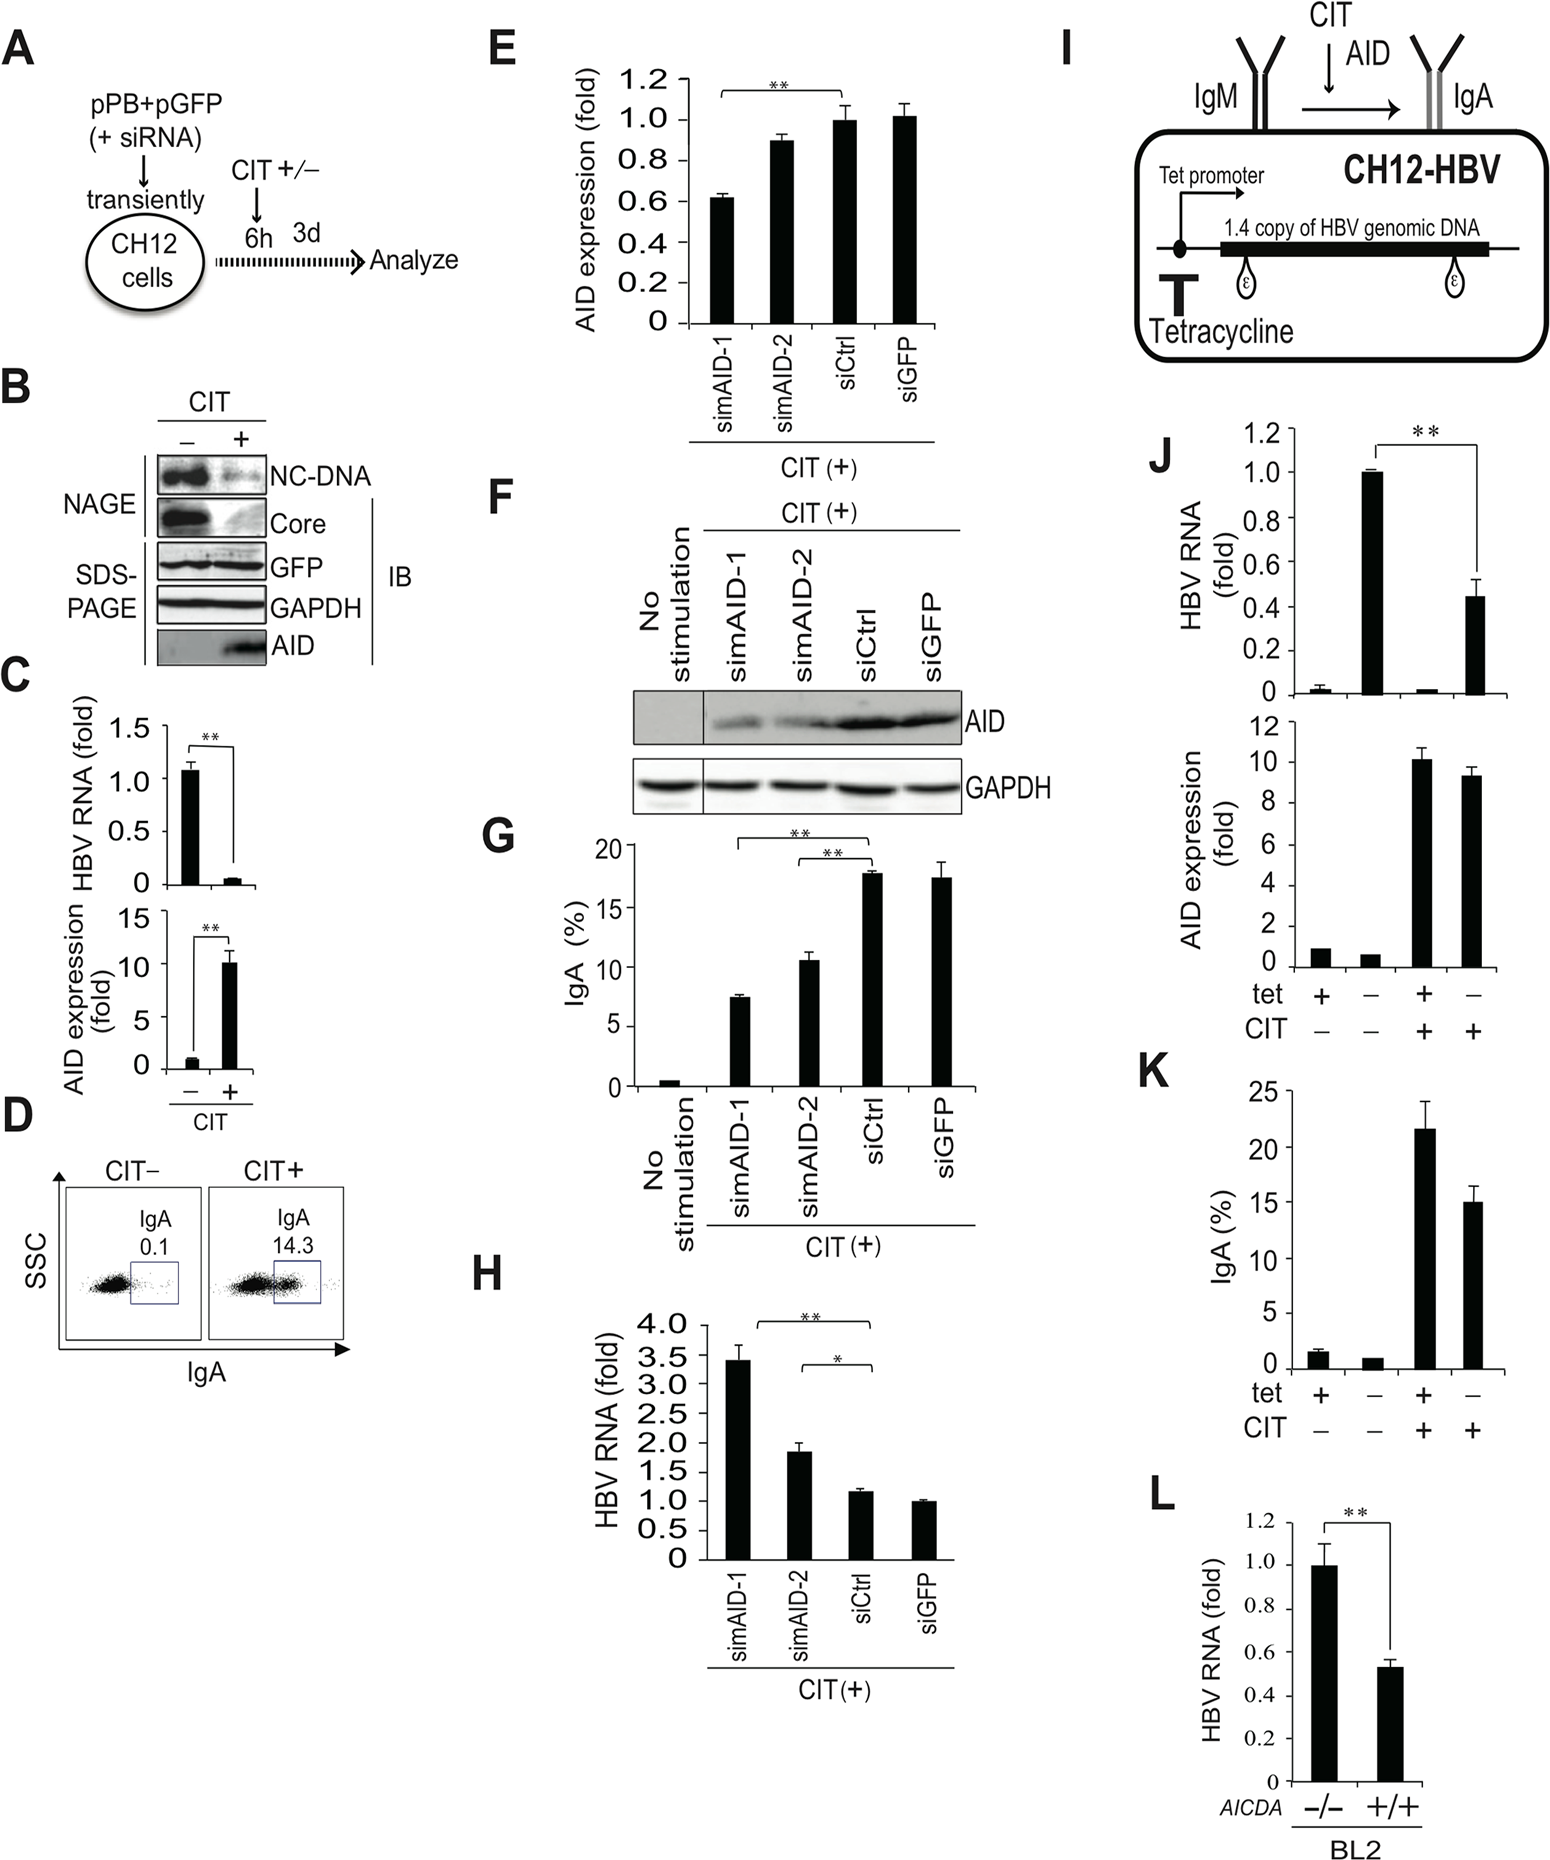 IgA switching activity correlates with reduction of HBV transcripts in B cells.